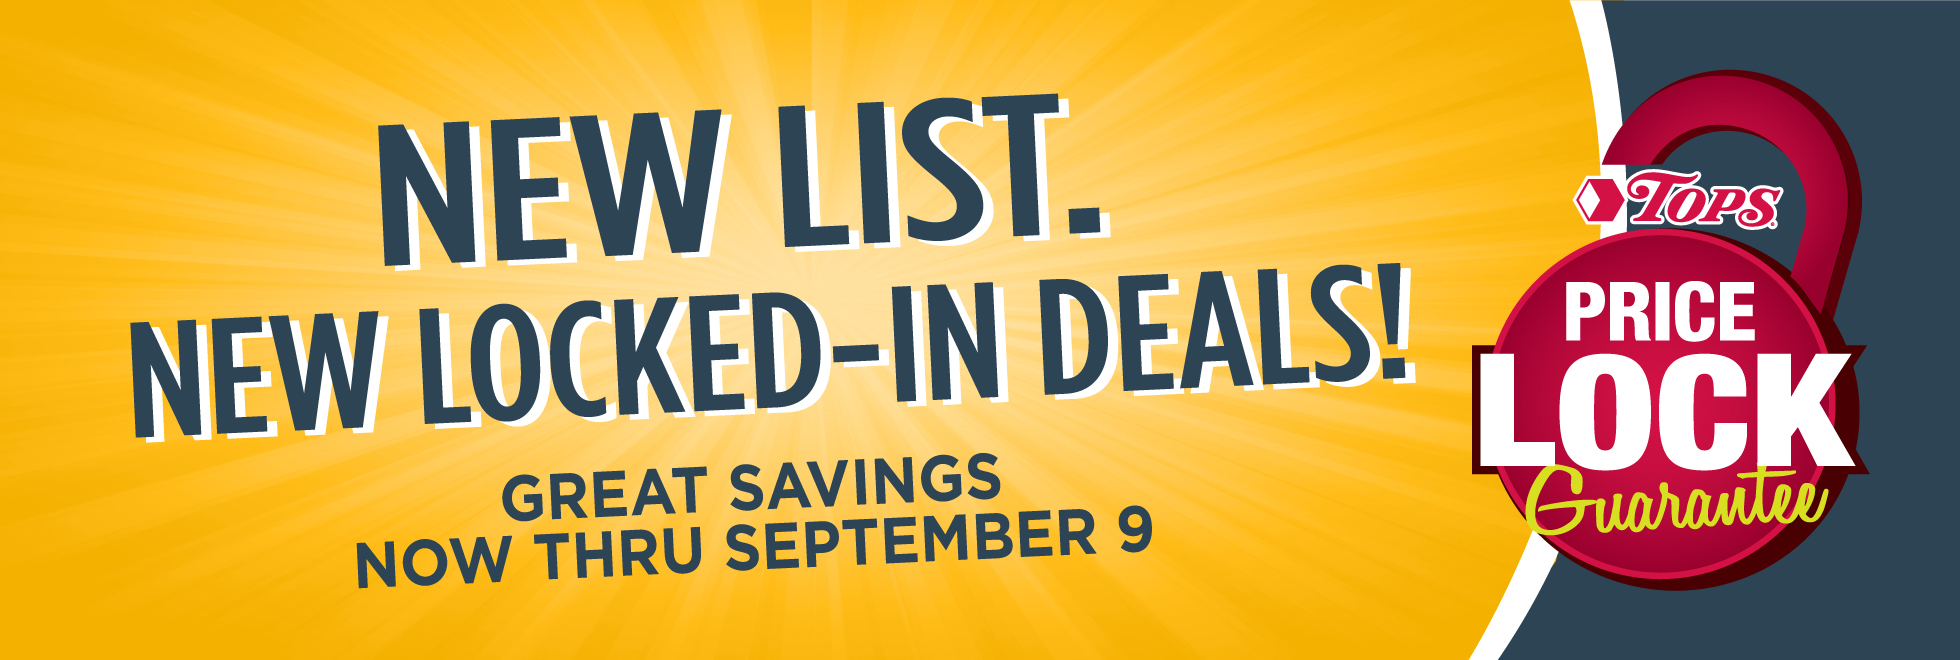 New Price Lock Lists Thru September 9th